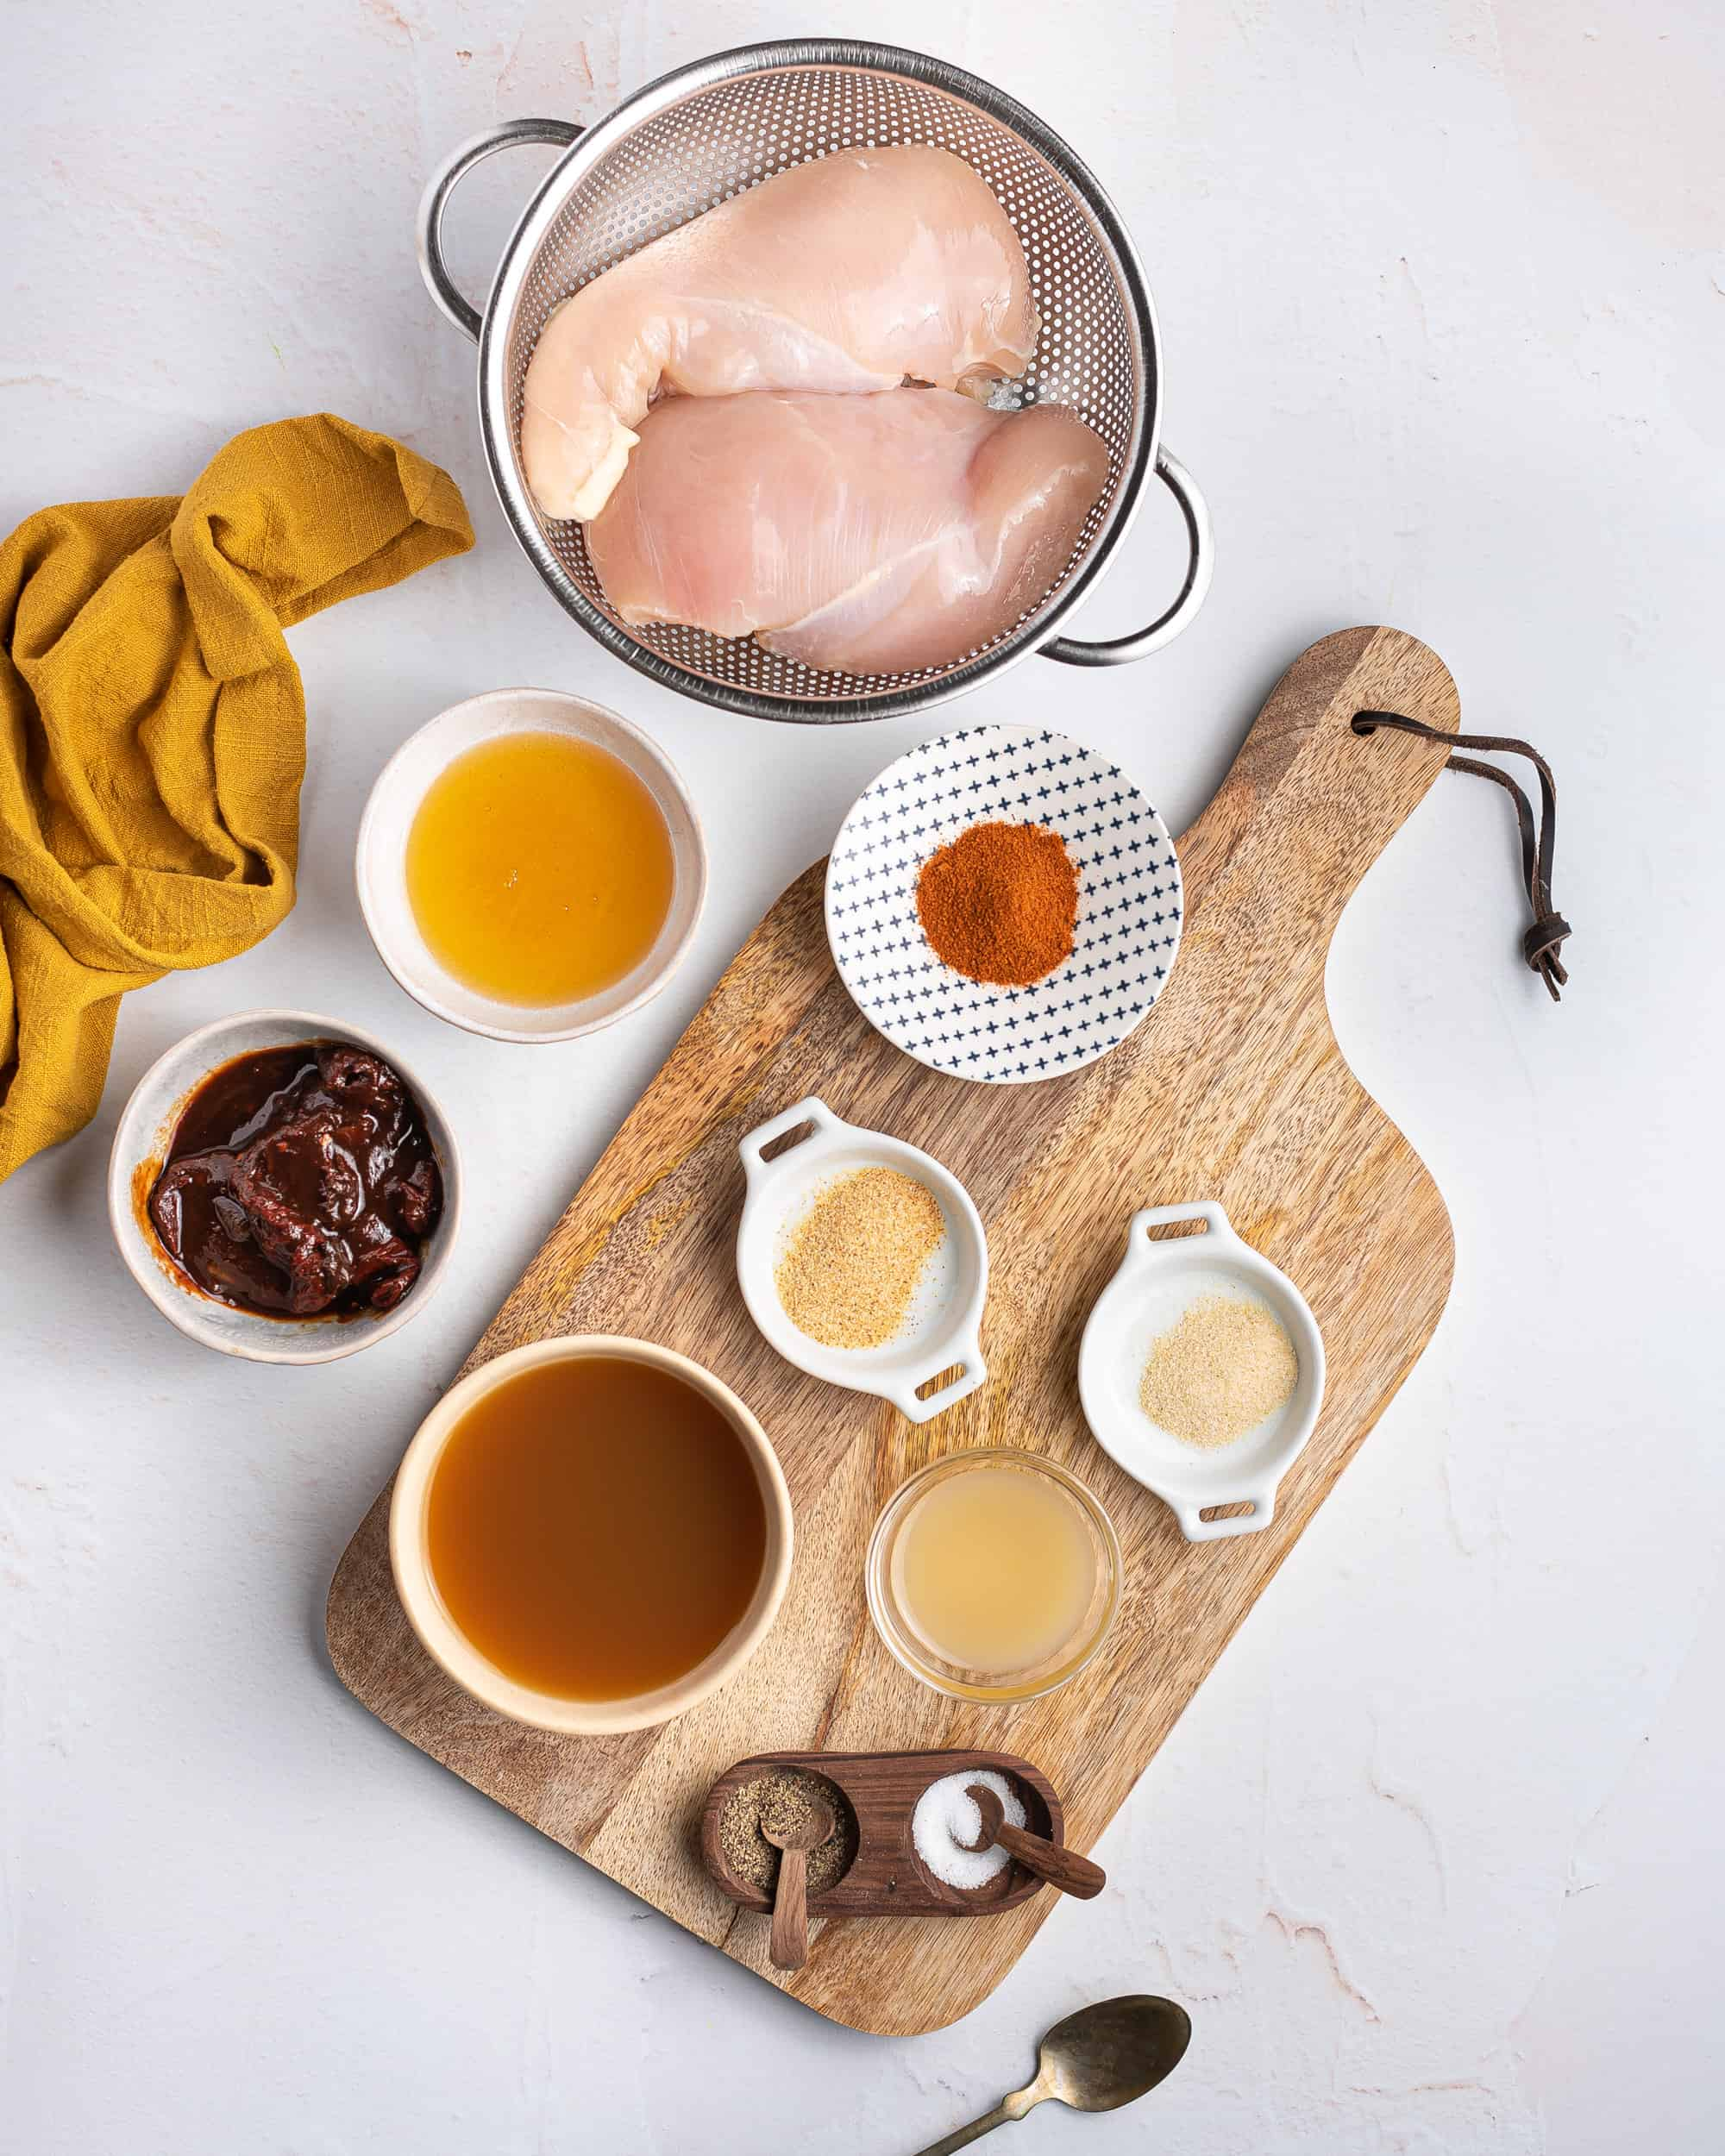 Ingredients needed to make Slow Cooker Honey Chipotle Chicken.